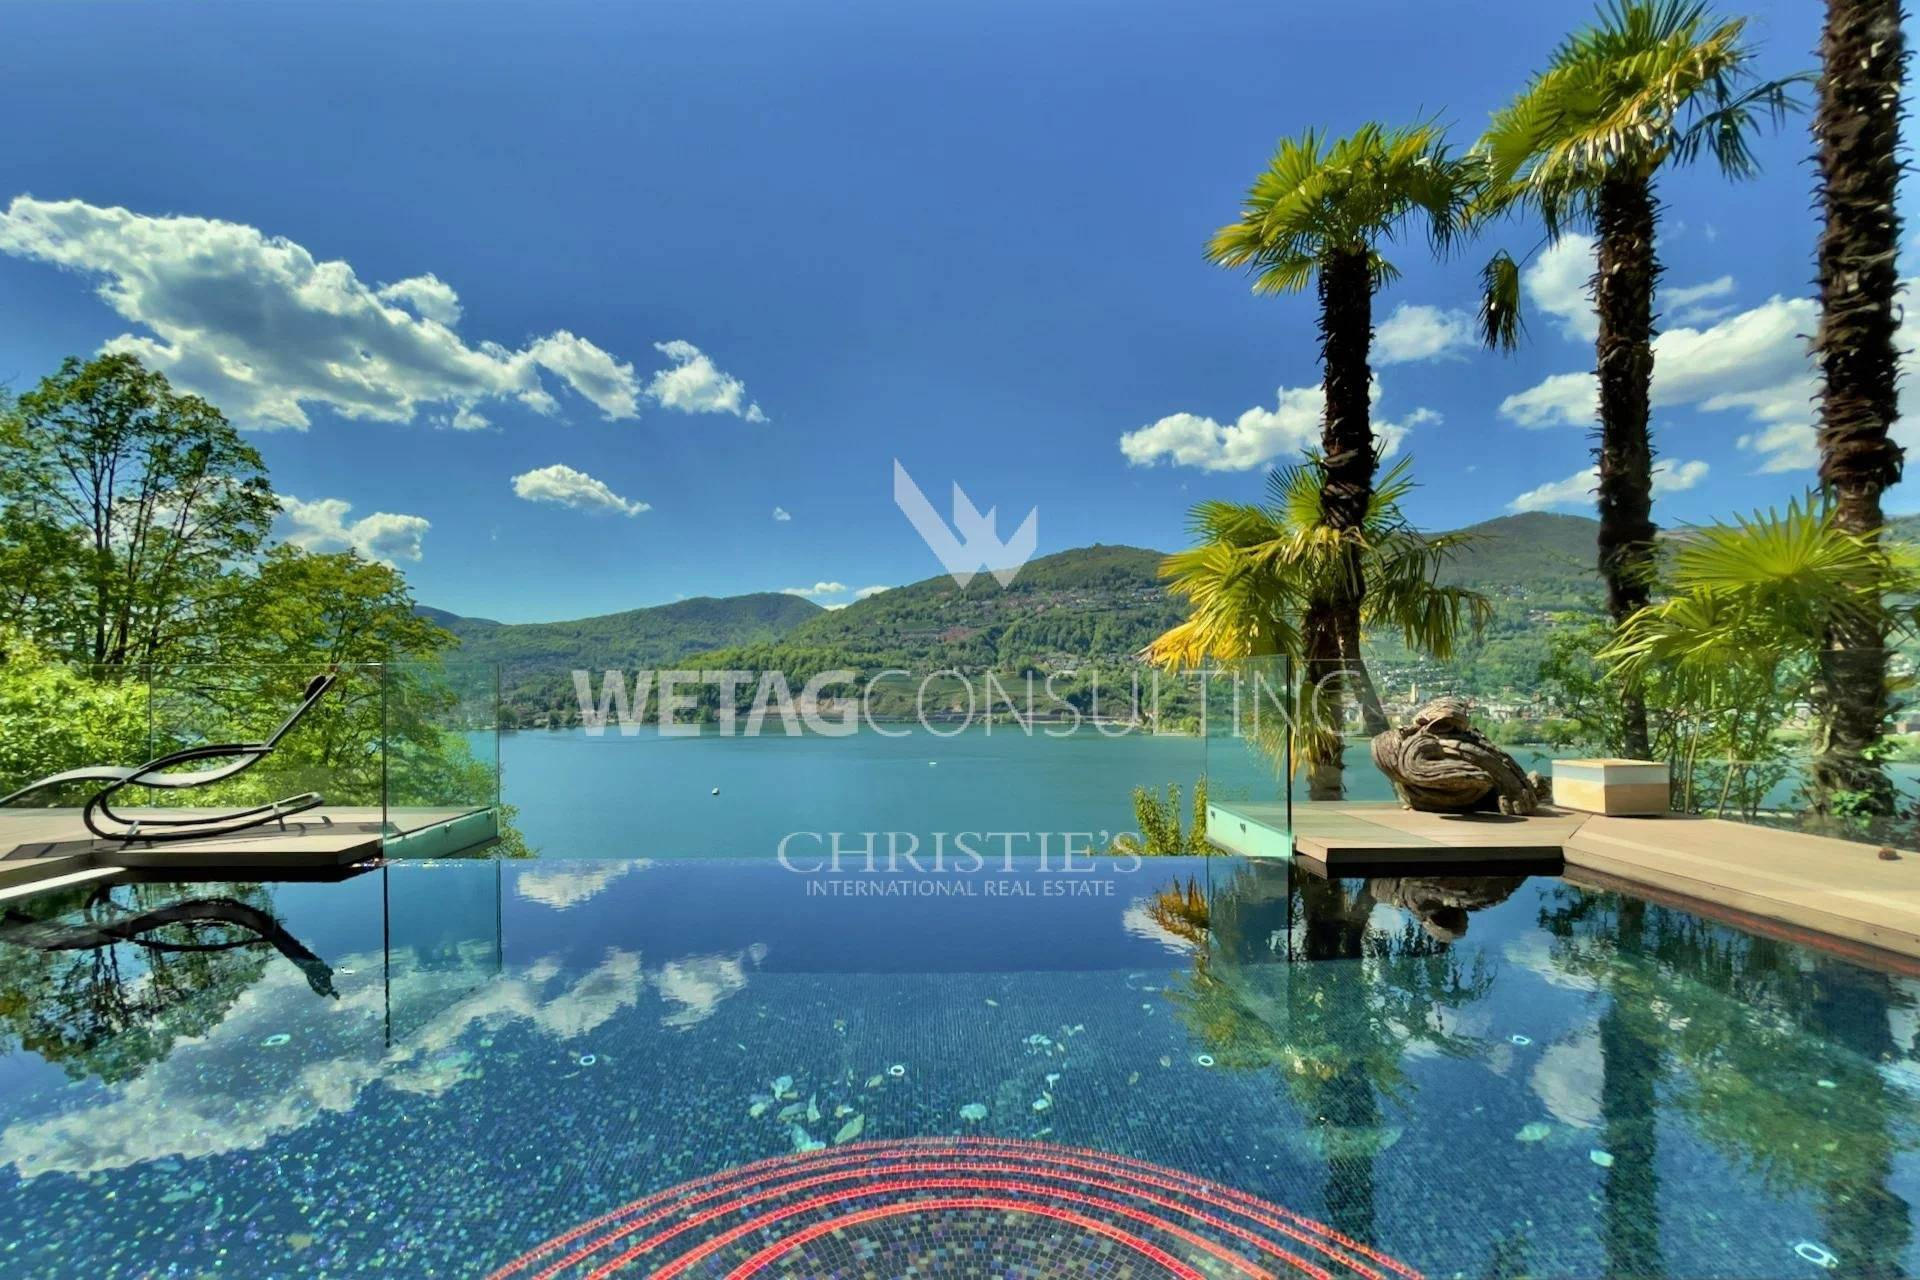 別墅 / 联排别墅 為 出售 在 Modern luxury villa overlooking Lake Lugano for sale in Montagnola Montagnola, 提契诺,6926 瑞士